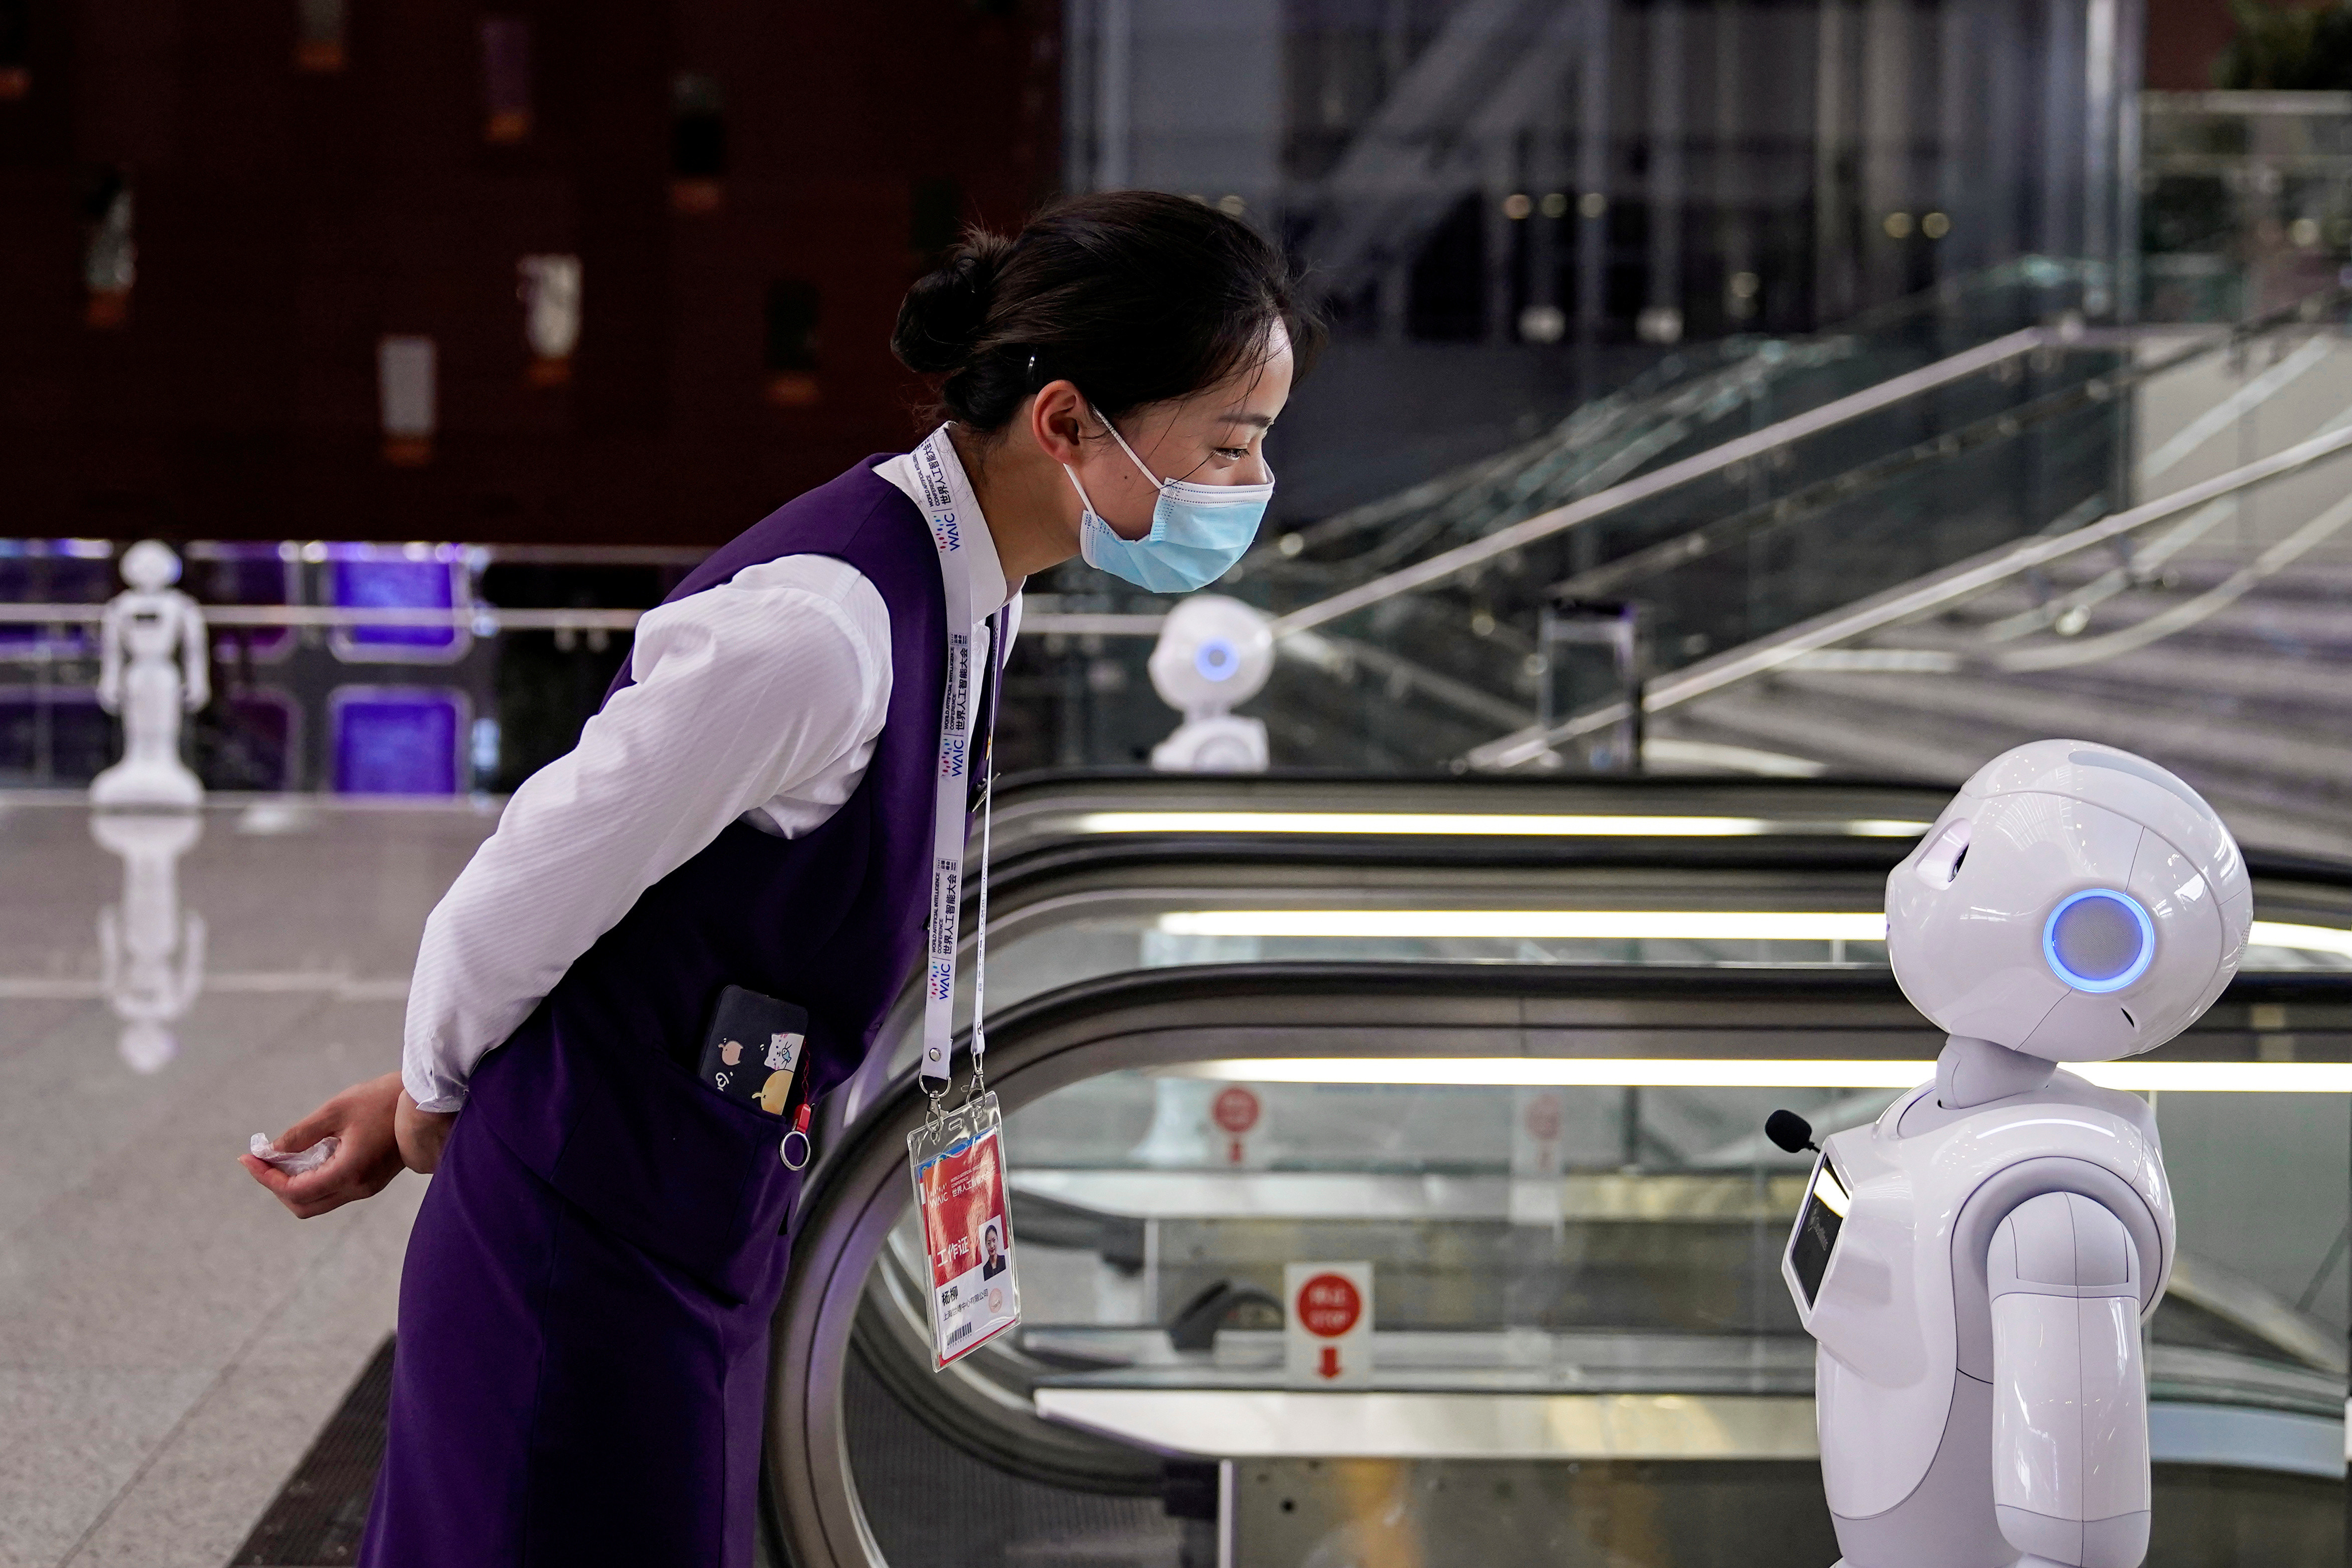 A staff member, wearing a face mask following the coronavirus disease (COVID-19) outbreak, looks at a robot at the venue for the World Artificial Intelligence Conference (WAIC) in Shanghai, China